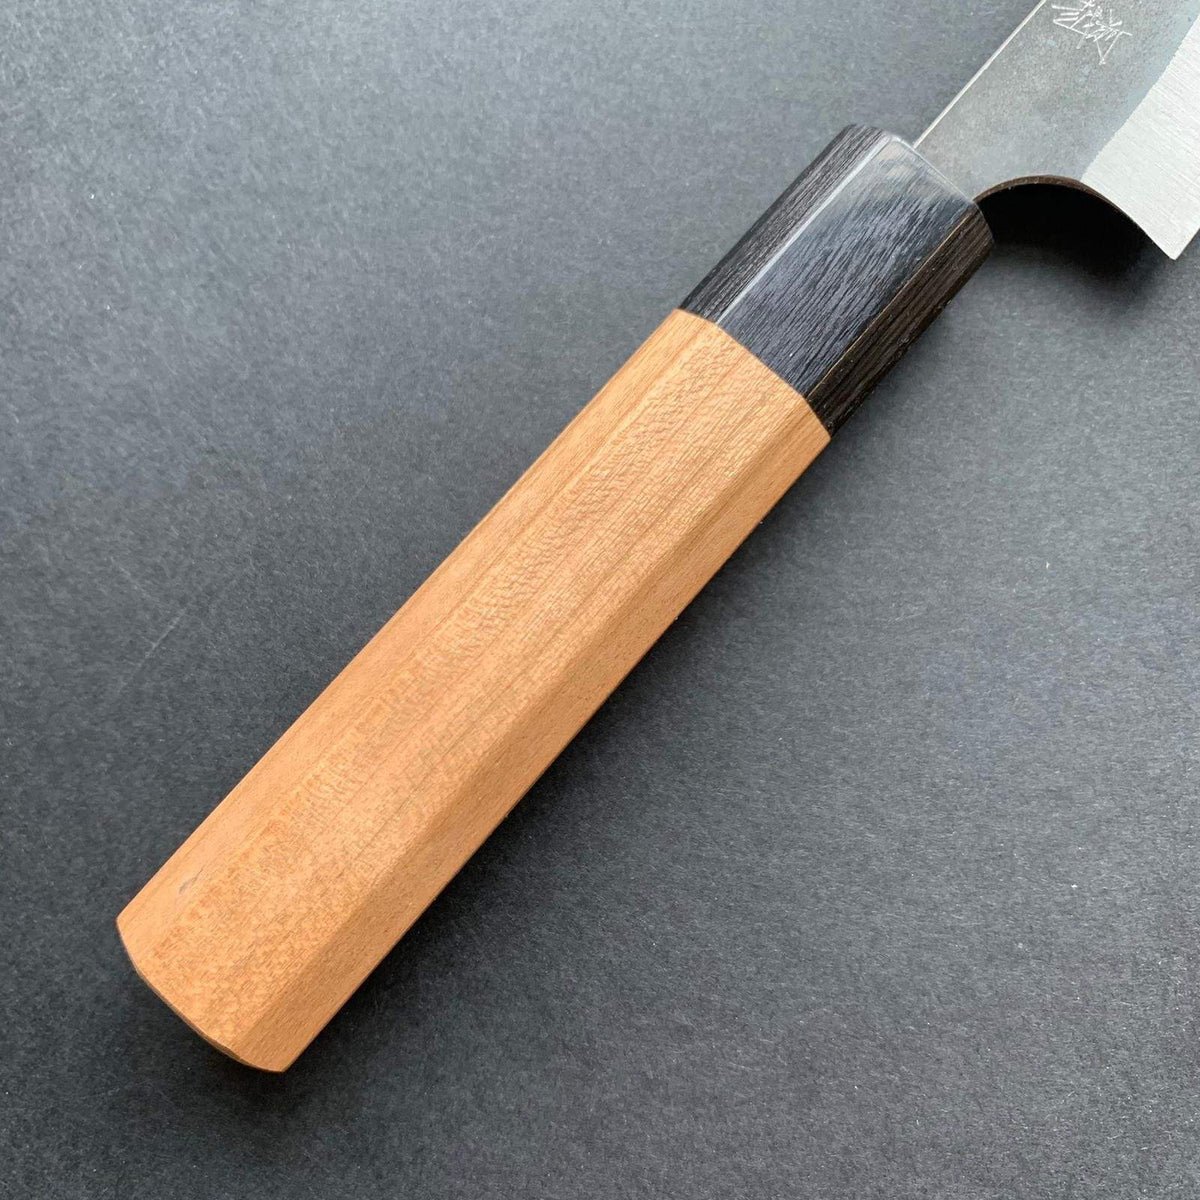 Petty knife, Aogami super with stainless steel cladding, kurouchi finish - Kanehiro